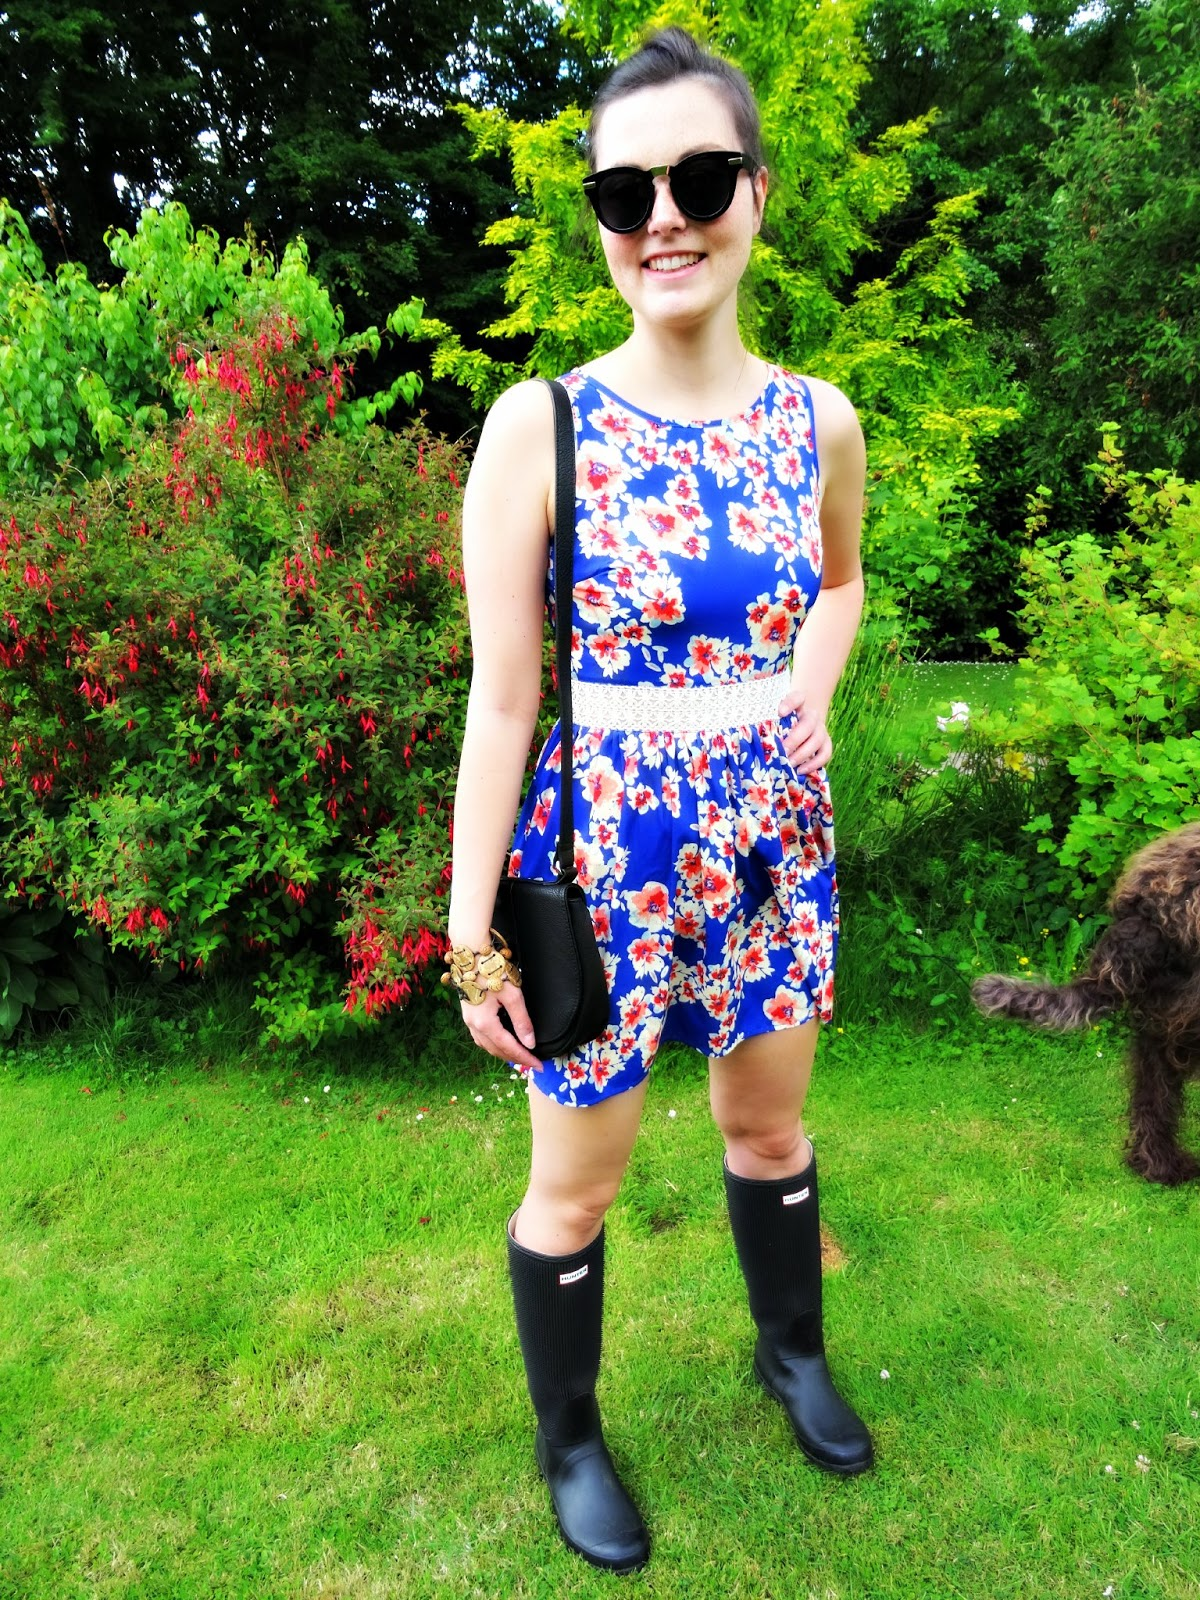 Glastonbury floral dress